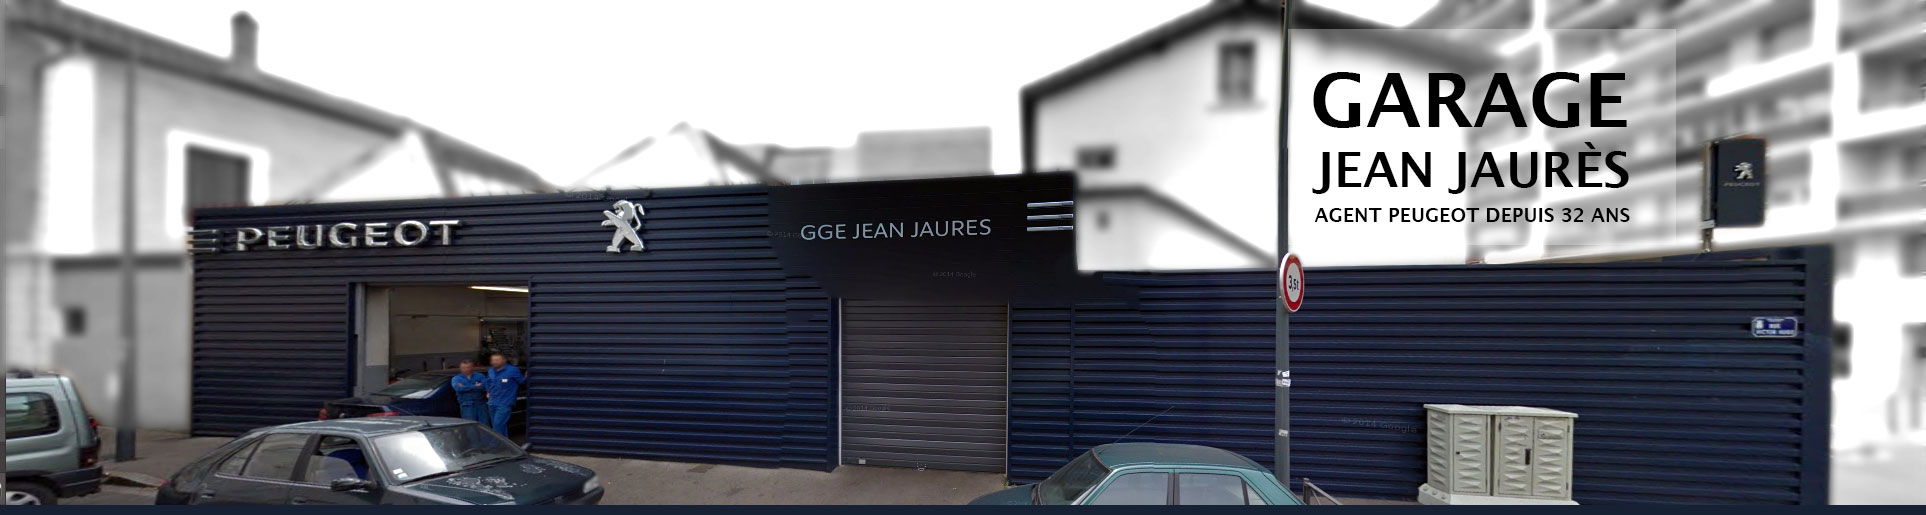 garage auto jean jaur s peugeot contr le technique villeurbanne. Black Bedroom Furniture Sets. Home Design Ideas